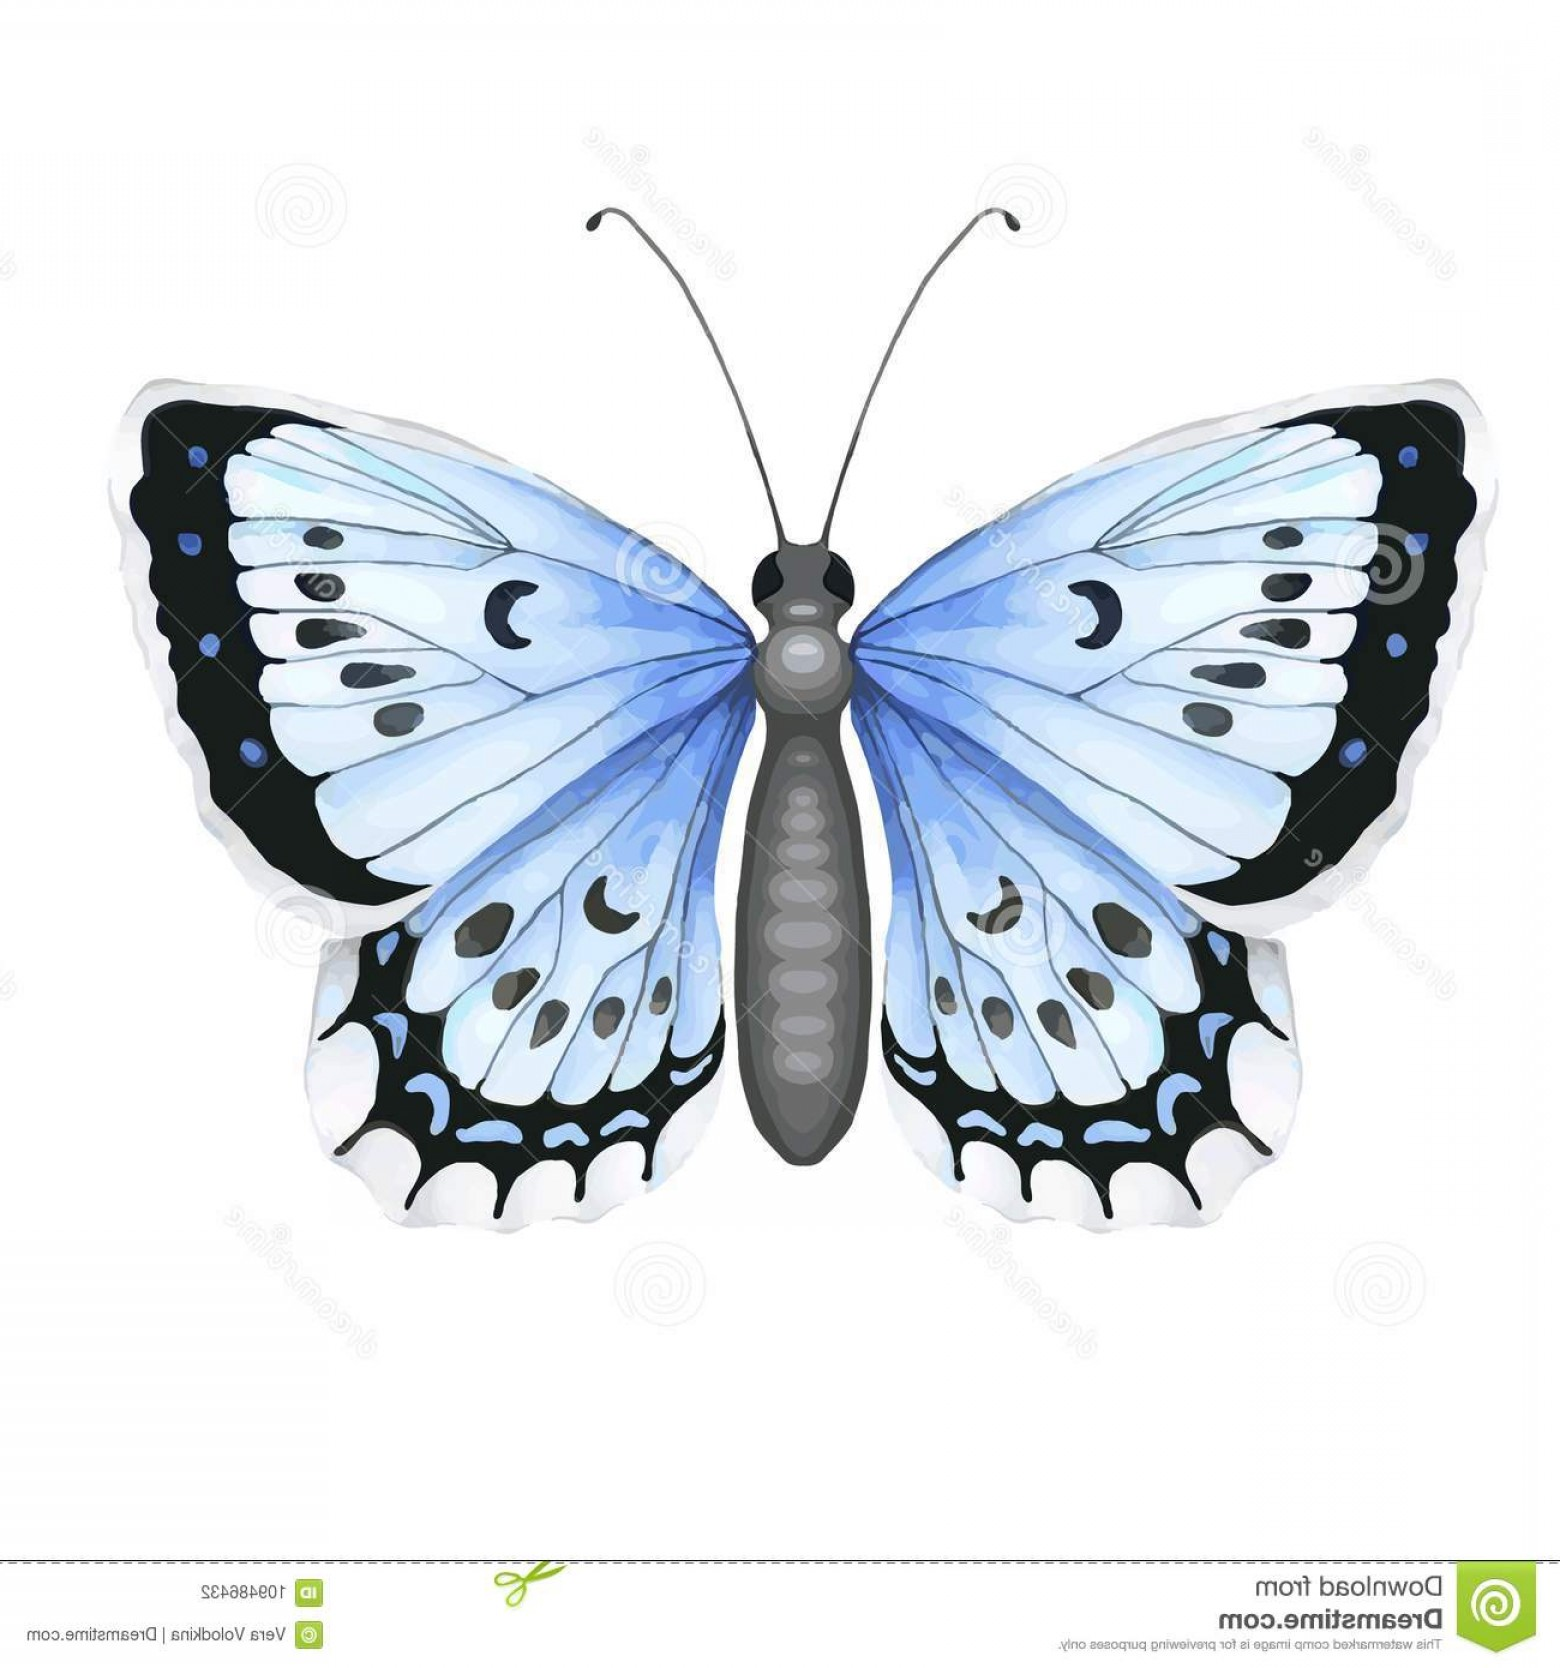 Real Butterfly Vector: Colorful Realistic Butterfly Isolated White Background Top View Art Vector Illustration Image